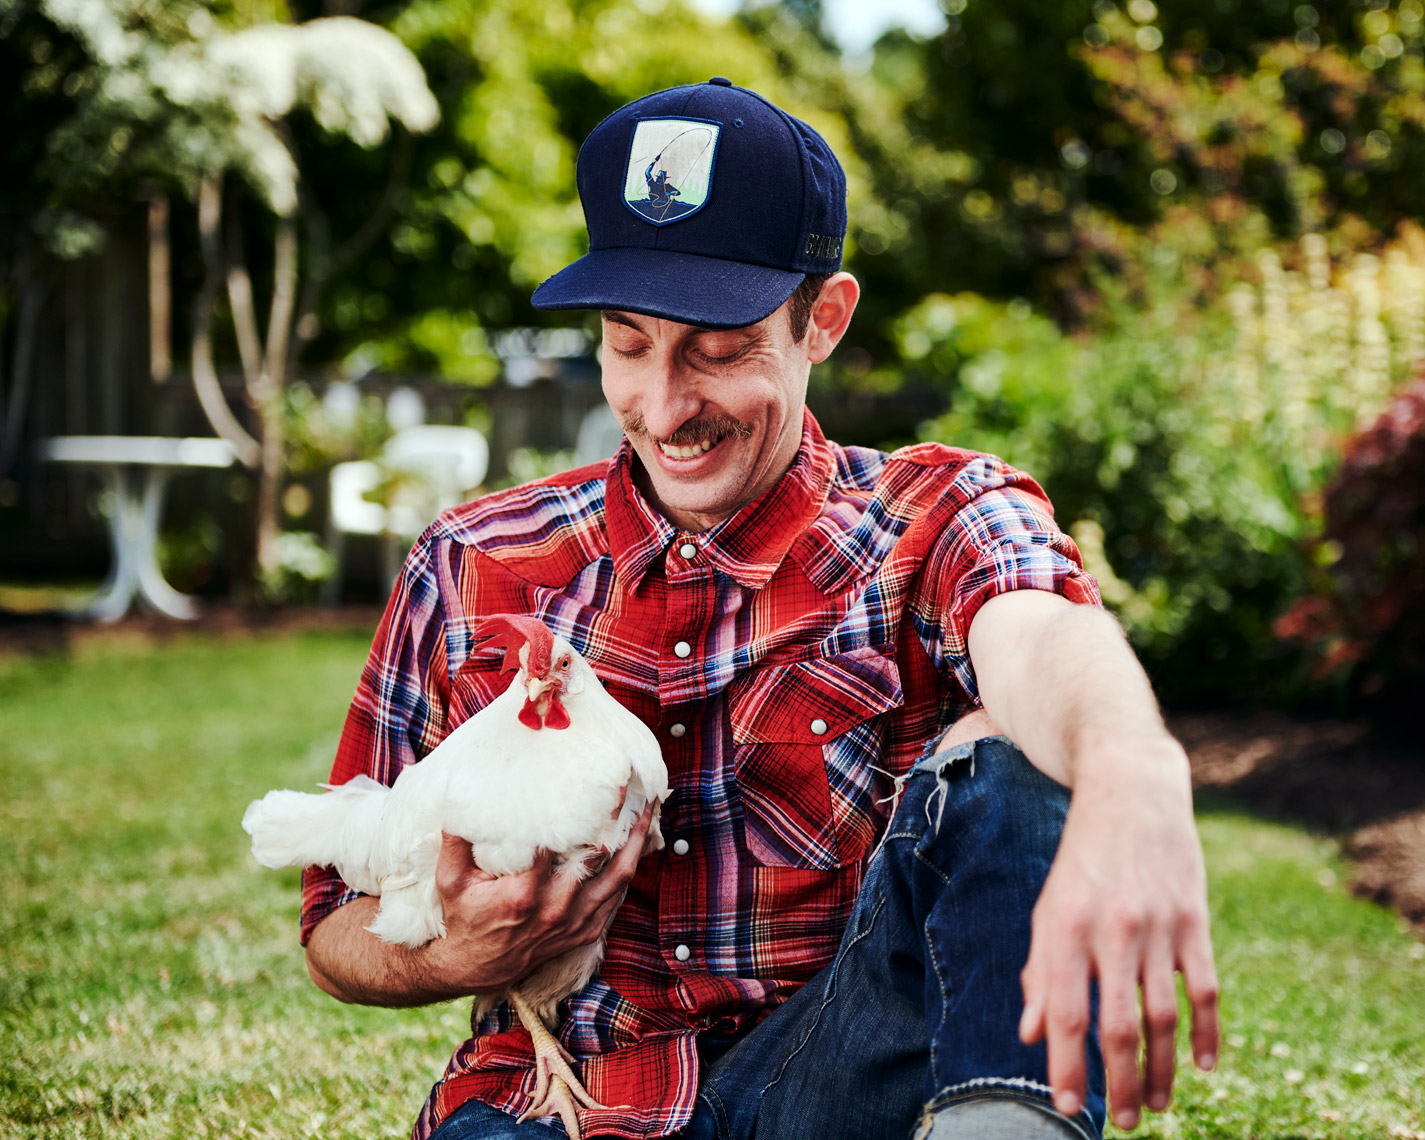 lifestyle photographer Amos Morgan captures a man with his chicken